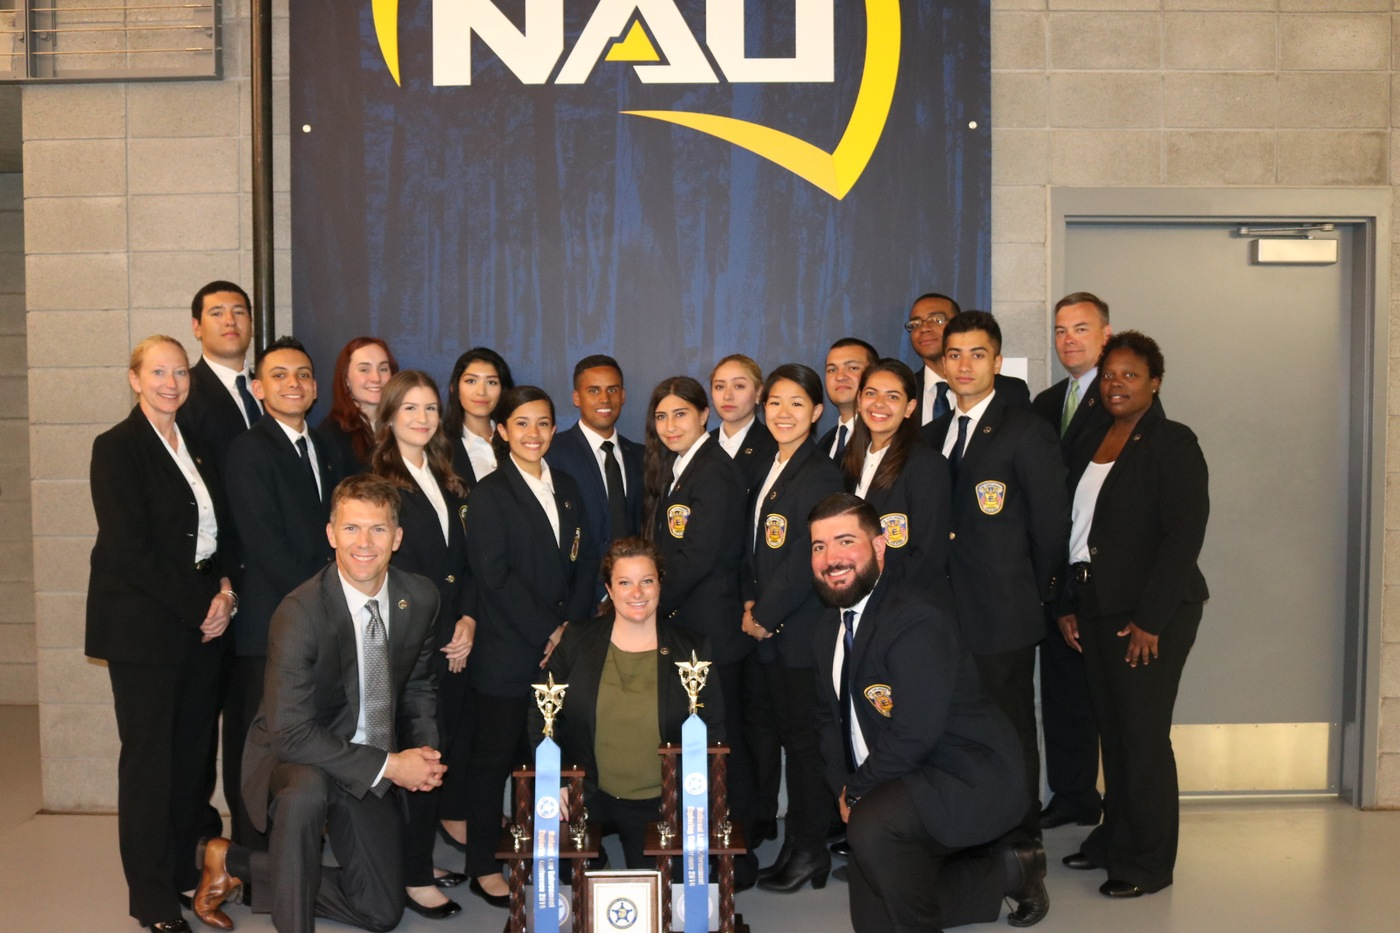 FBI New York Explorers with their FBI advisors pose with the Post's first and second place trophies from the 2016 National Explorer Competition in Flagstaff, Arizona.